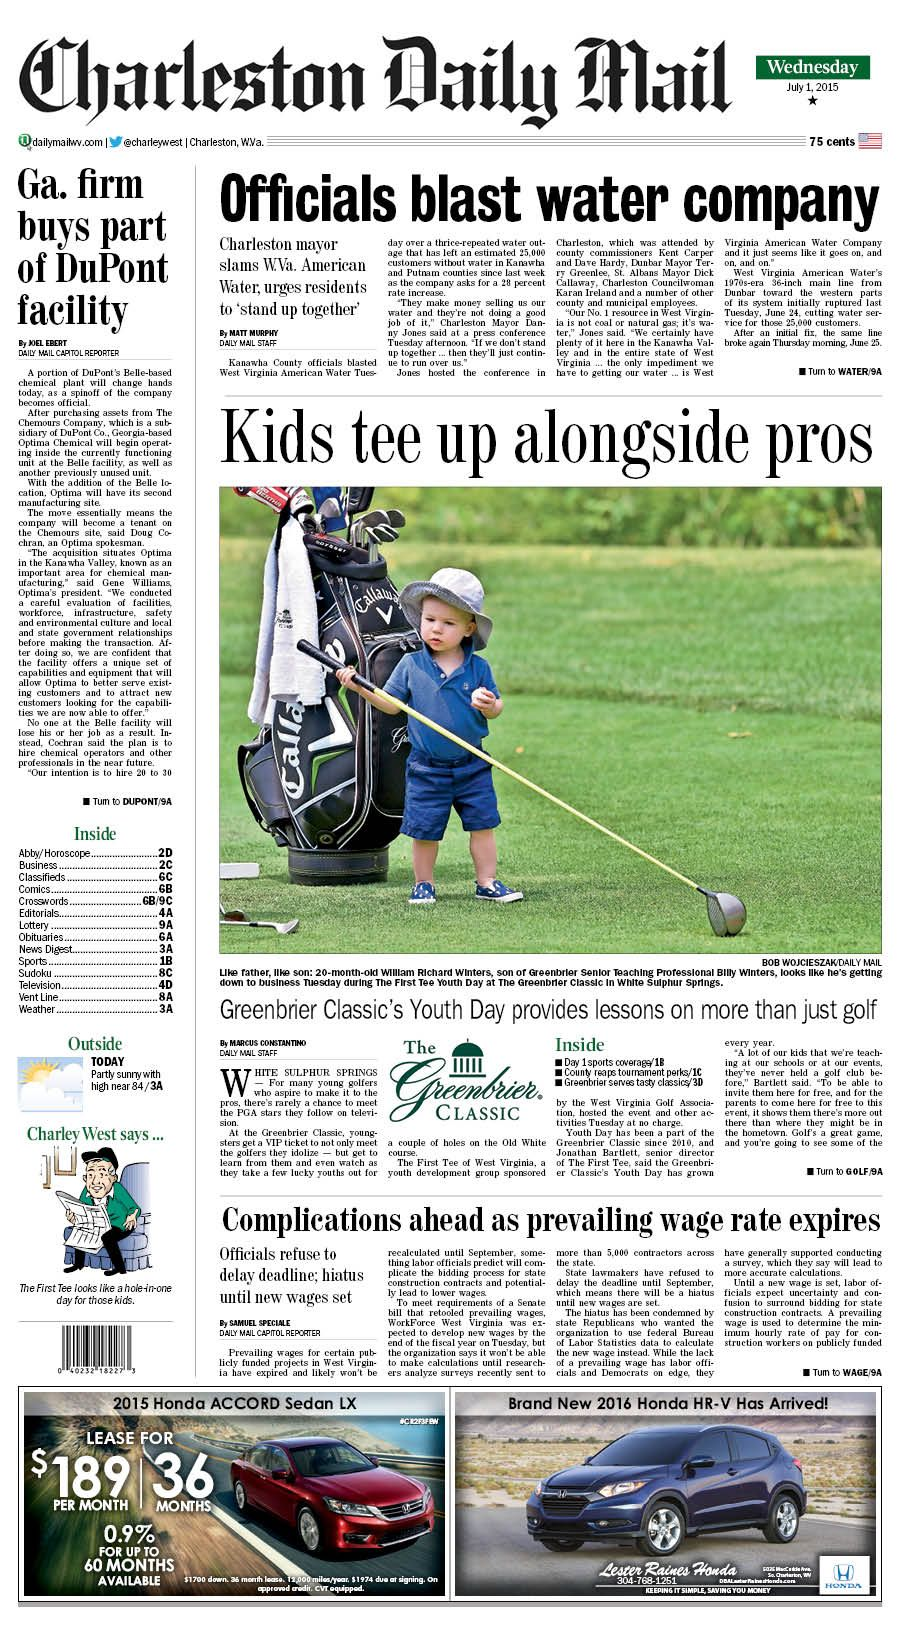 On Wednesday's front, kids teed up alongside the pros a The Greenbrier Classic in White Sulphur Springs. The First Tee of West Virginia, a youth development group sponsored by the West Virginia Golf Association, hosted the Youth Day event and other activities Tuesday at no charge. Youngsters were given the chance to meet pro golfers, learn from them and even hit a few balls on the Old White course.